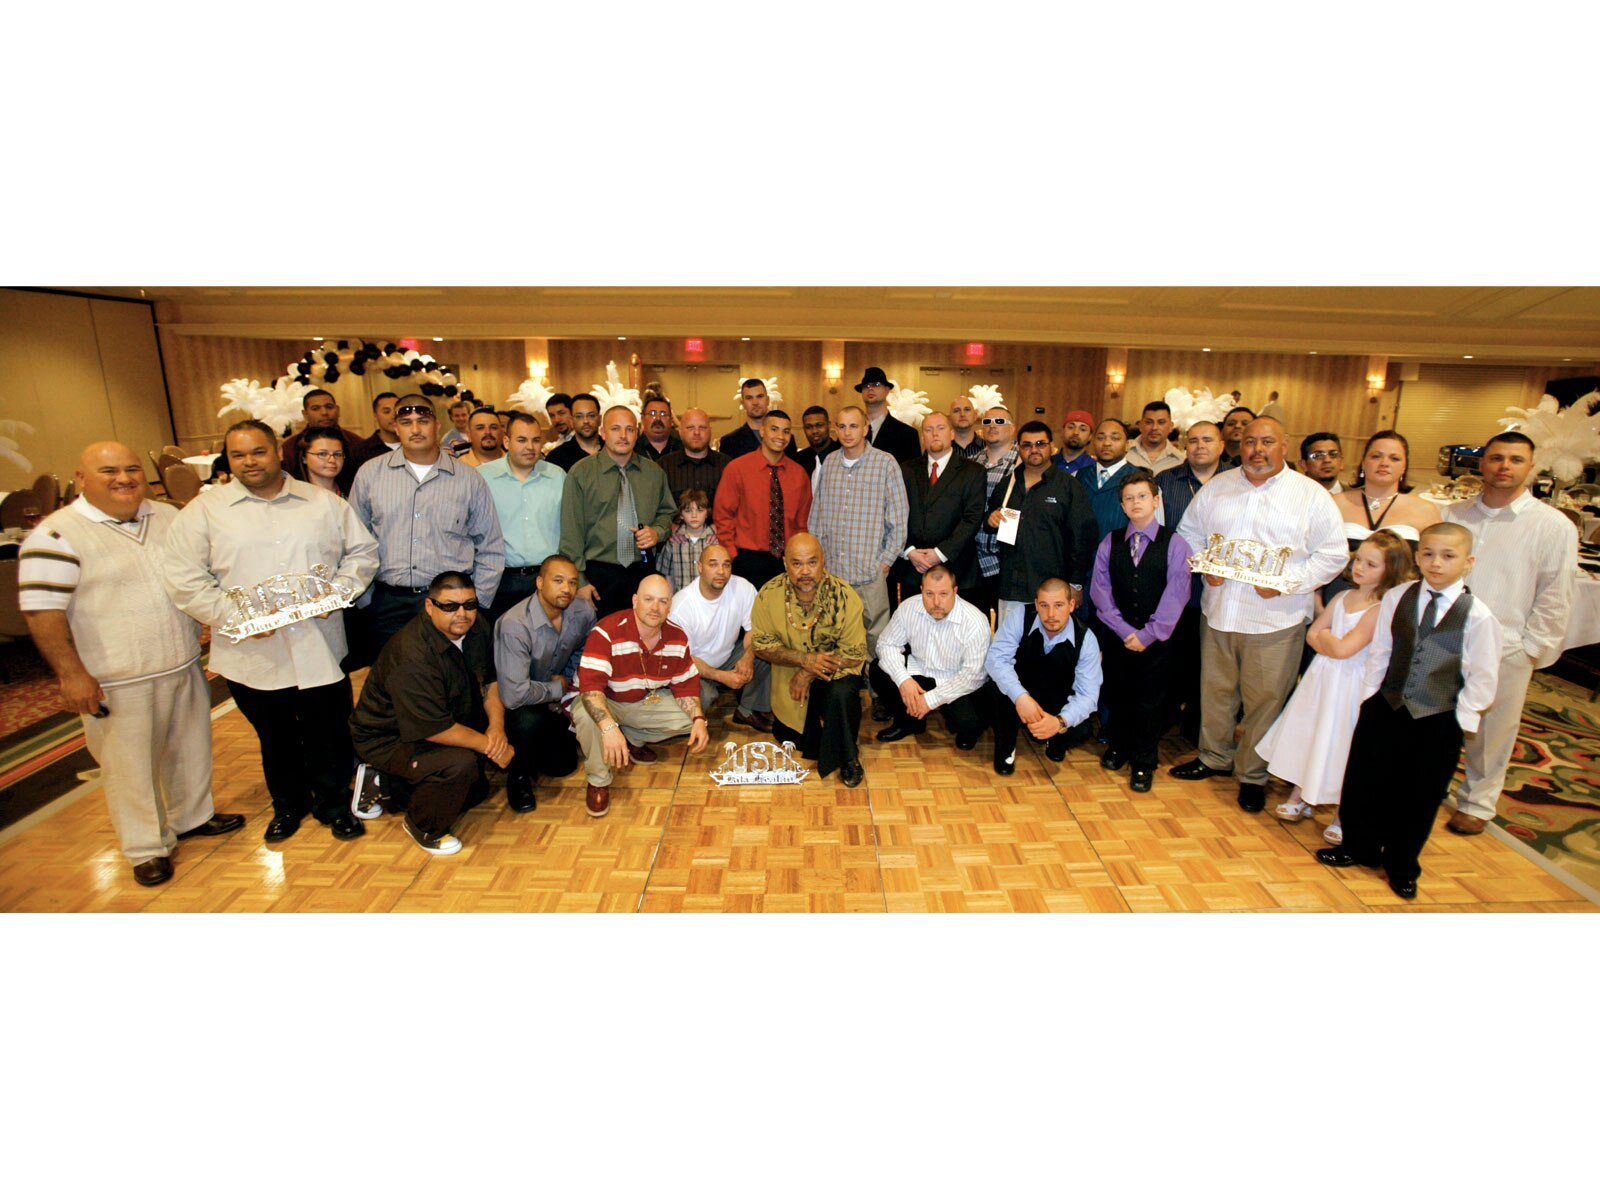 1003_lrmp_18_o-uce_car_club_17th_anniversary-group_picture2